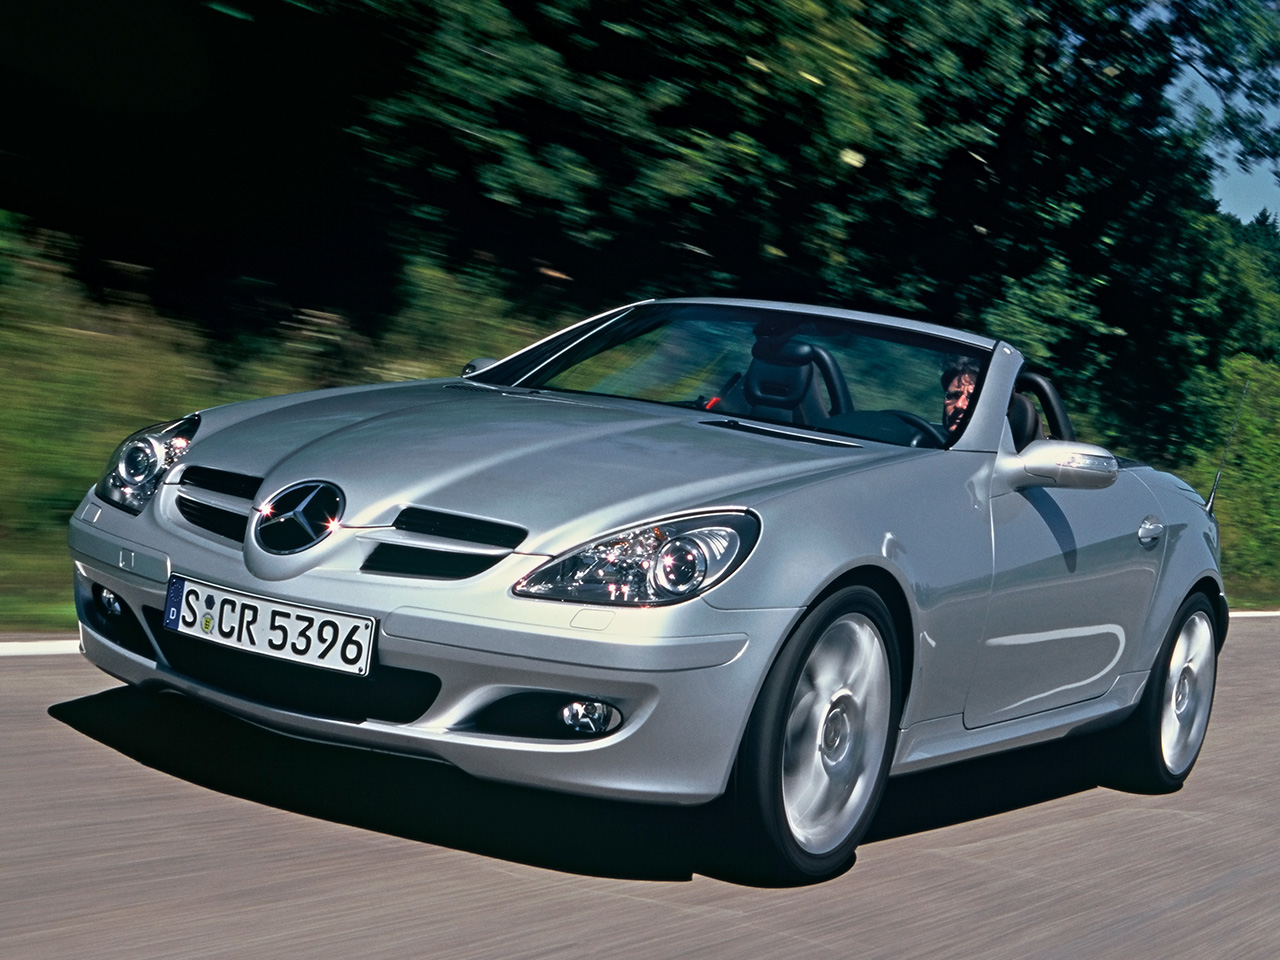 mercedes benz slk class images car wallpaper prices. Black Bedroom Furniture Sets. Home Design Ideas